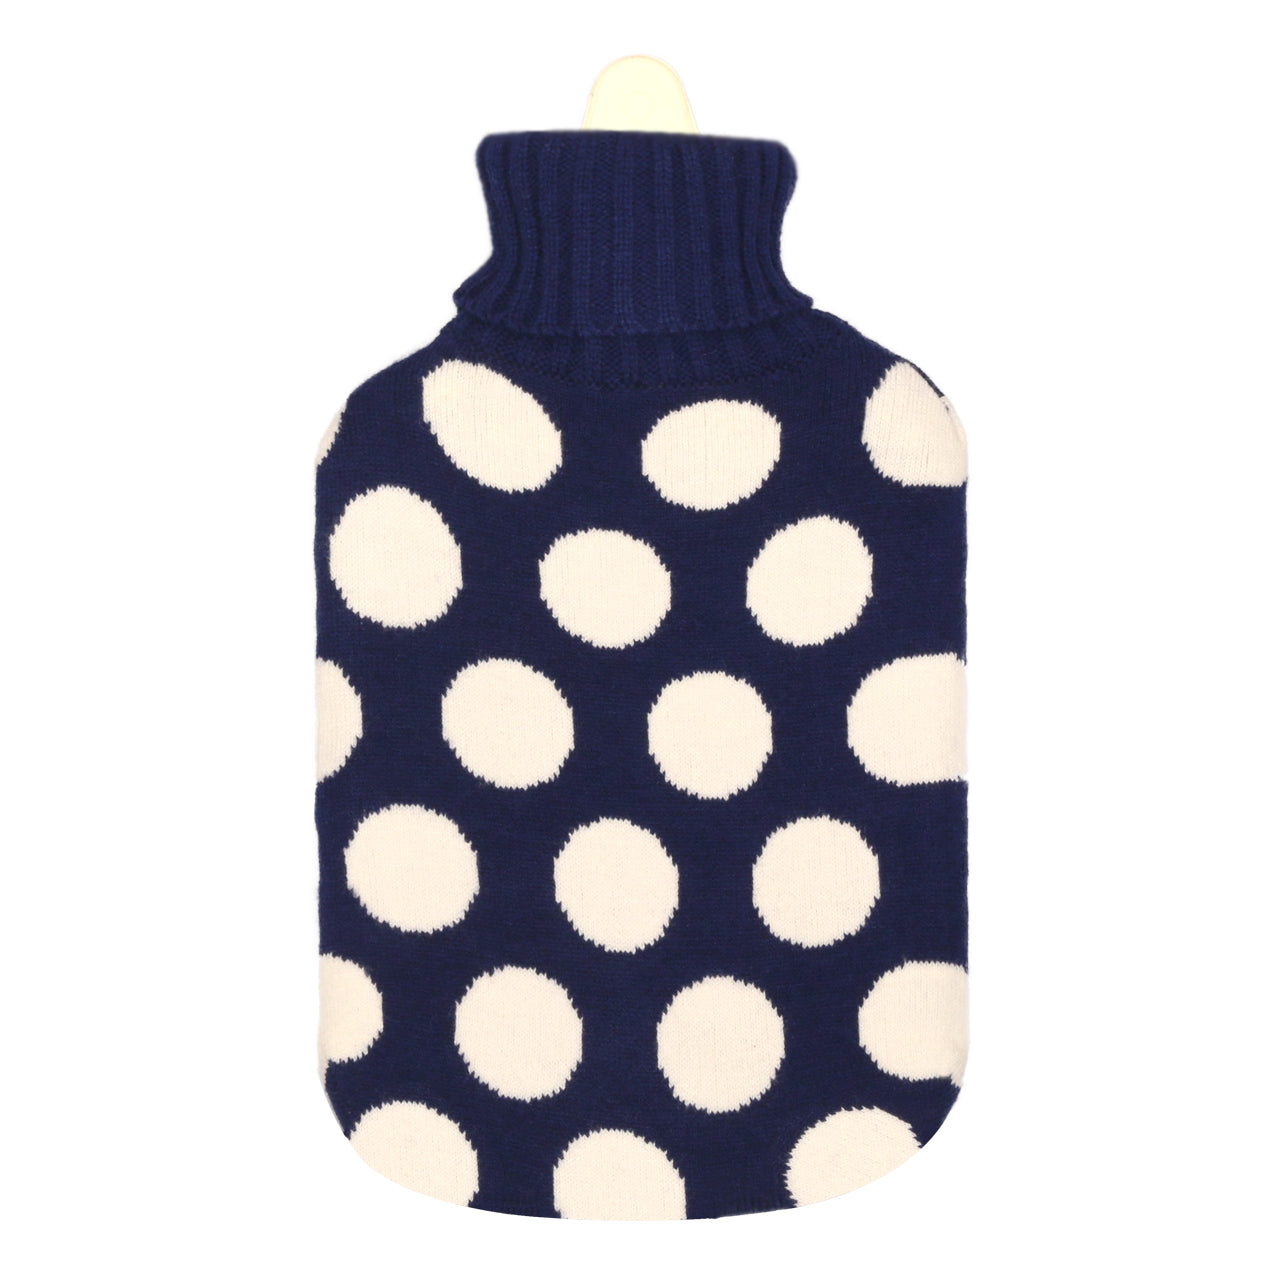 Hot Water Bottle & Cover - Spots Knit - The Grain Shop Online Store